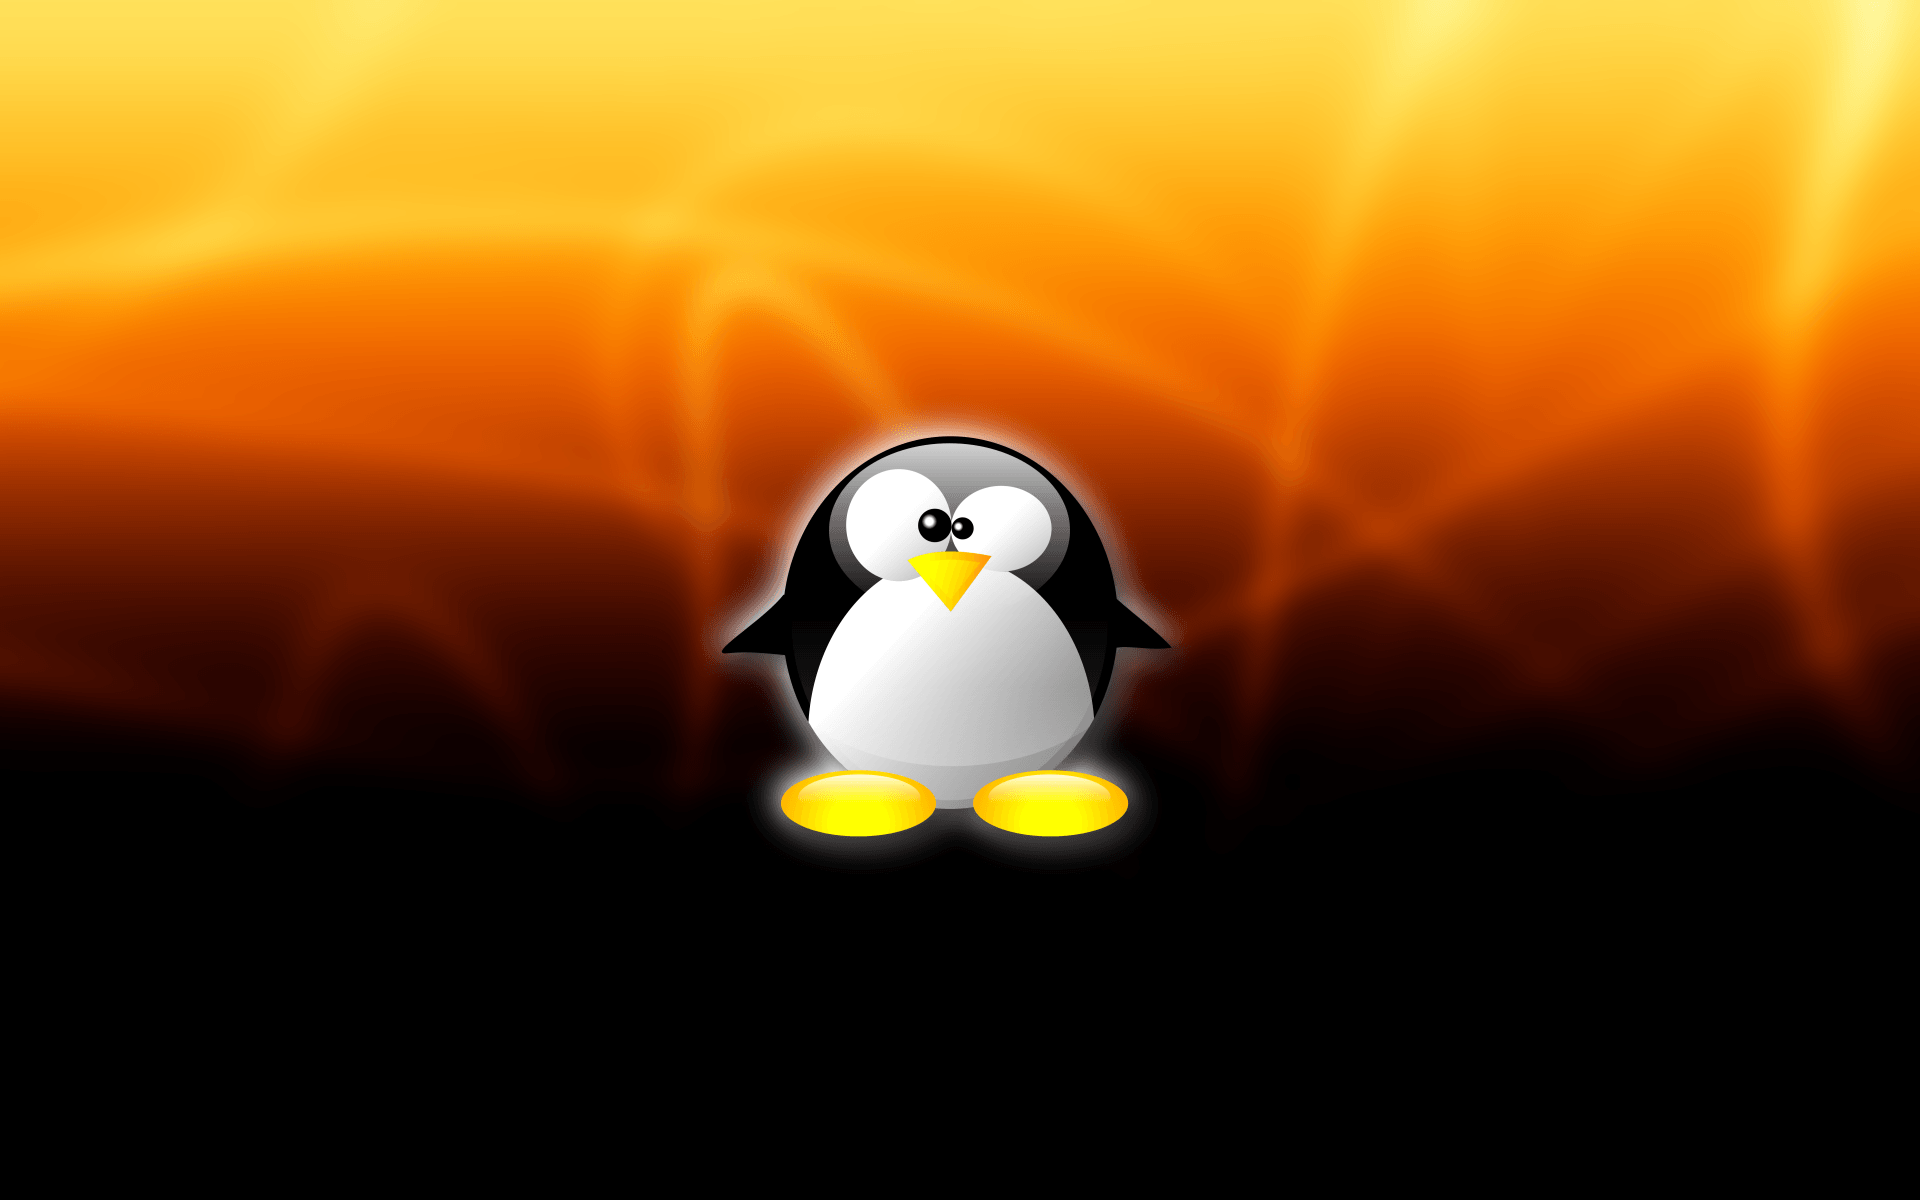 Linux Tux Wallpapers - Full HD wallpaper search